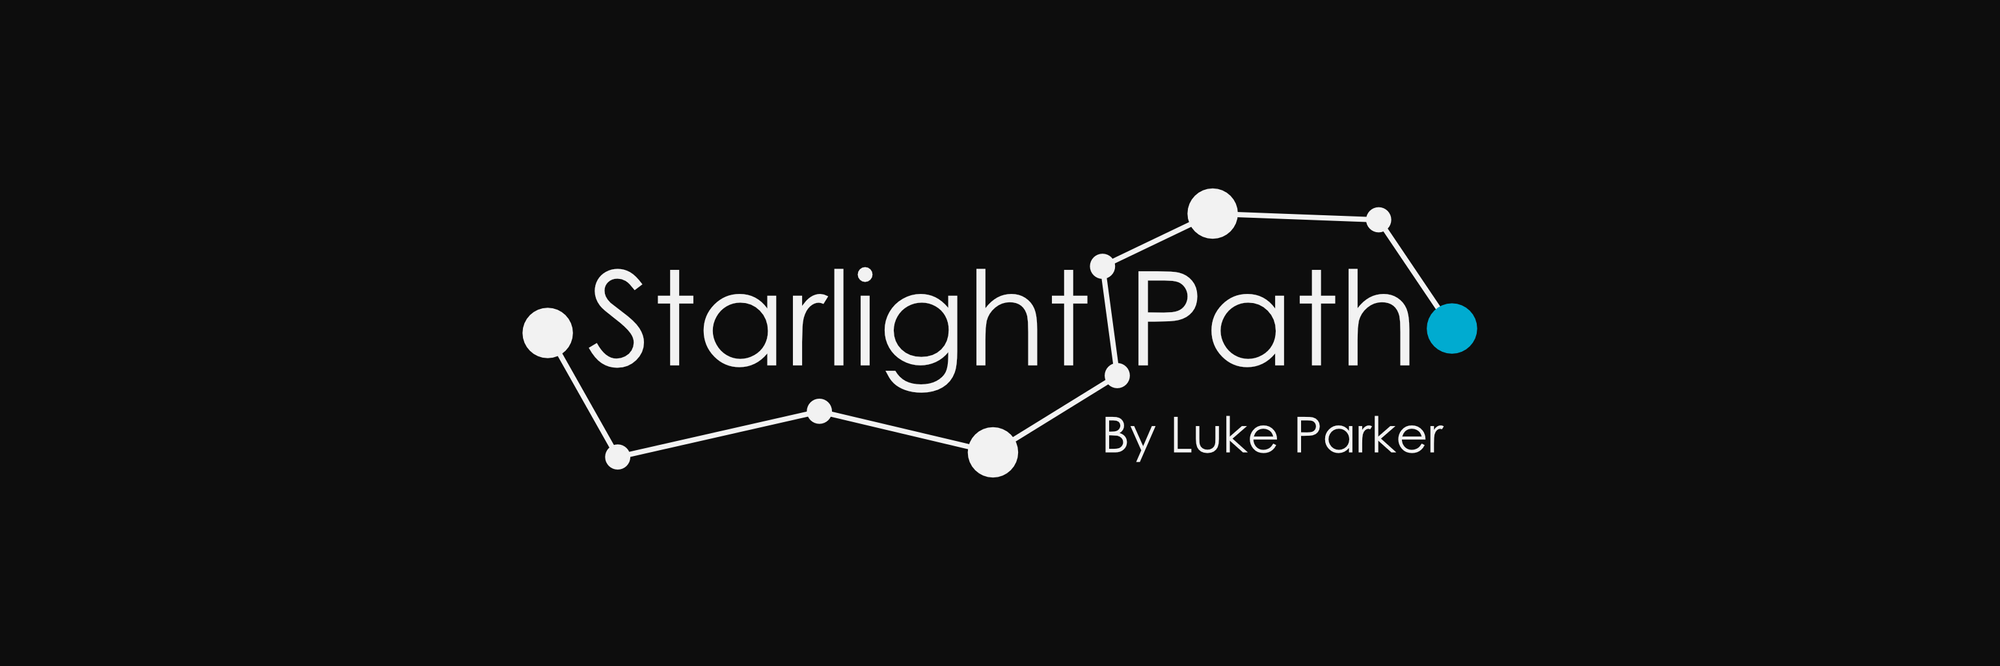 Starlight Path